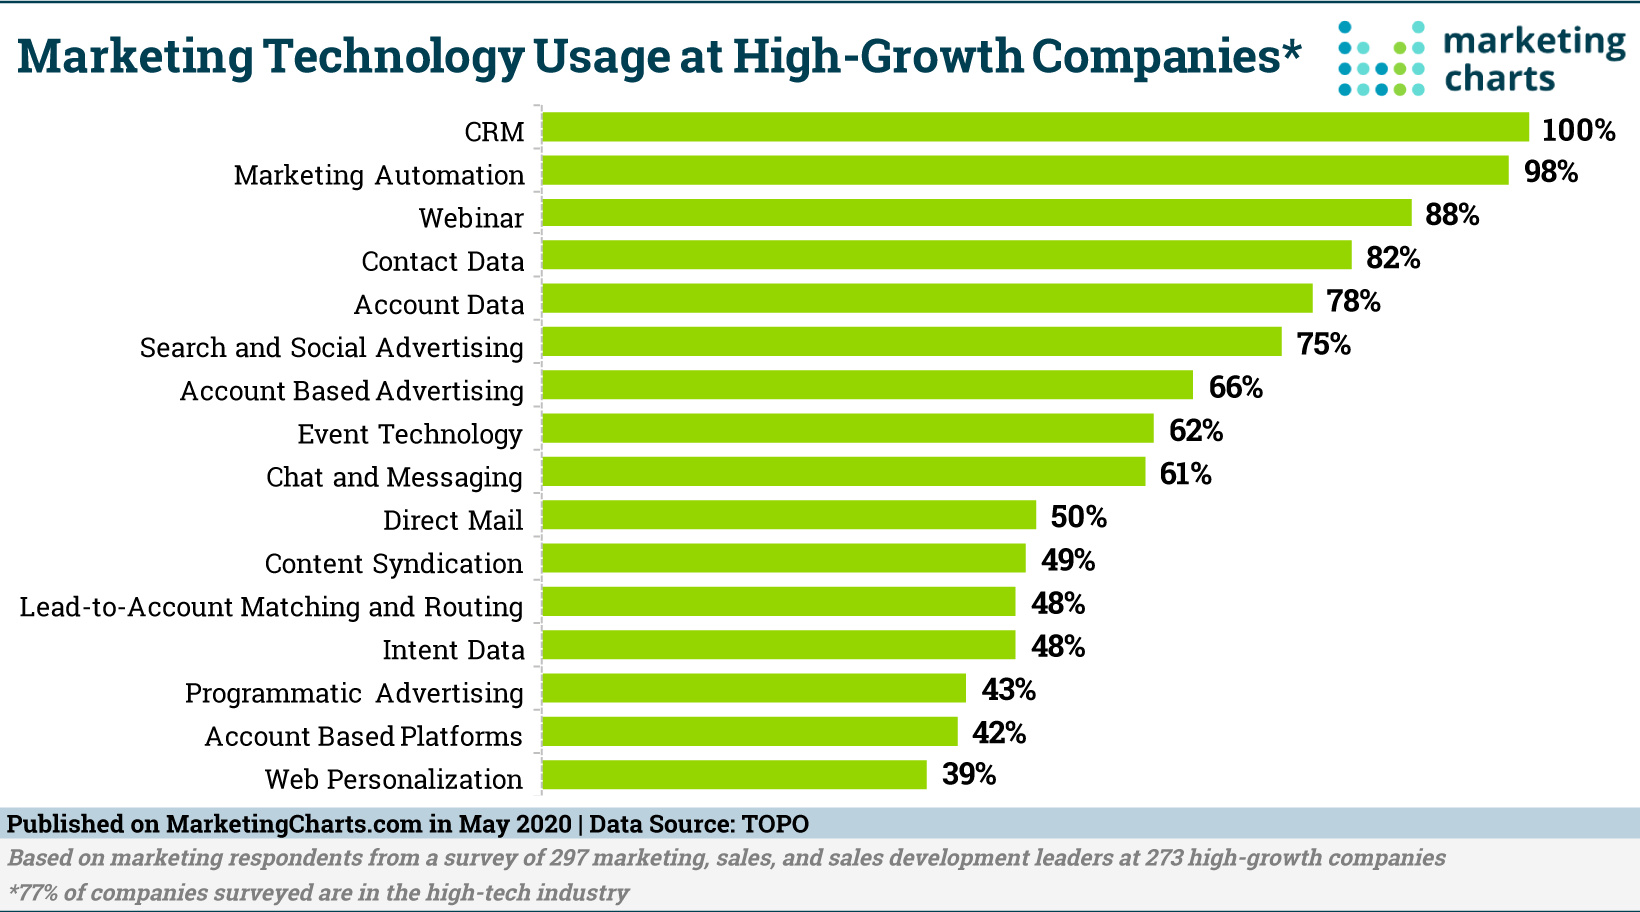 TOPO-MarTech-Usage-High-Growth-Companies-May2020